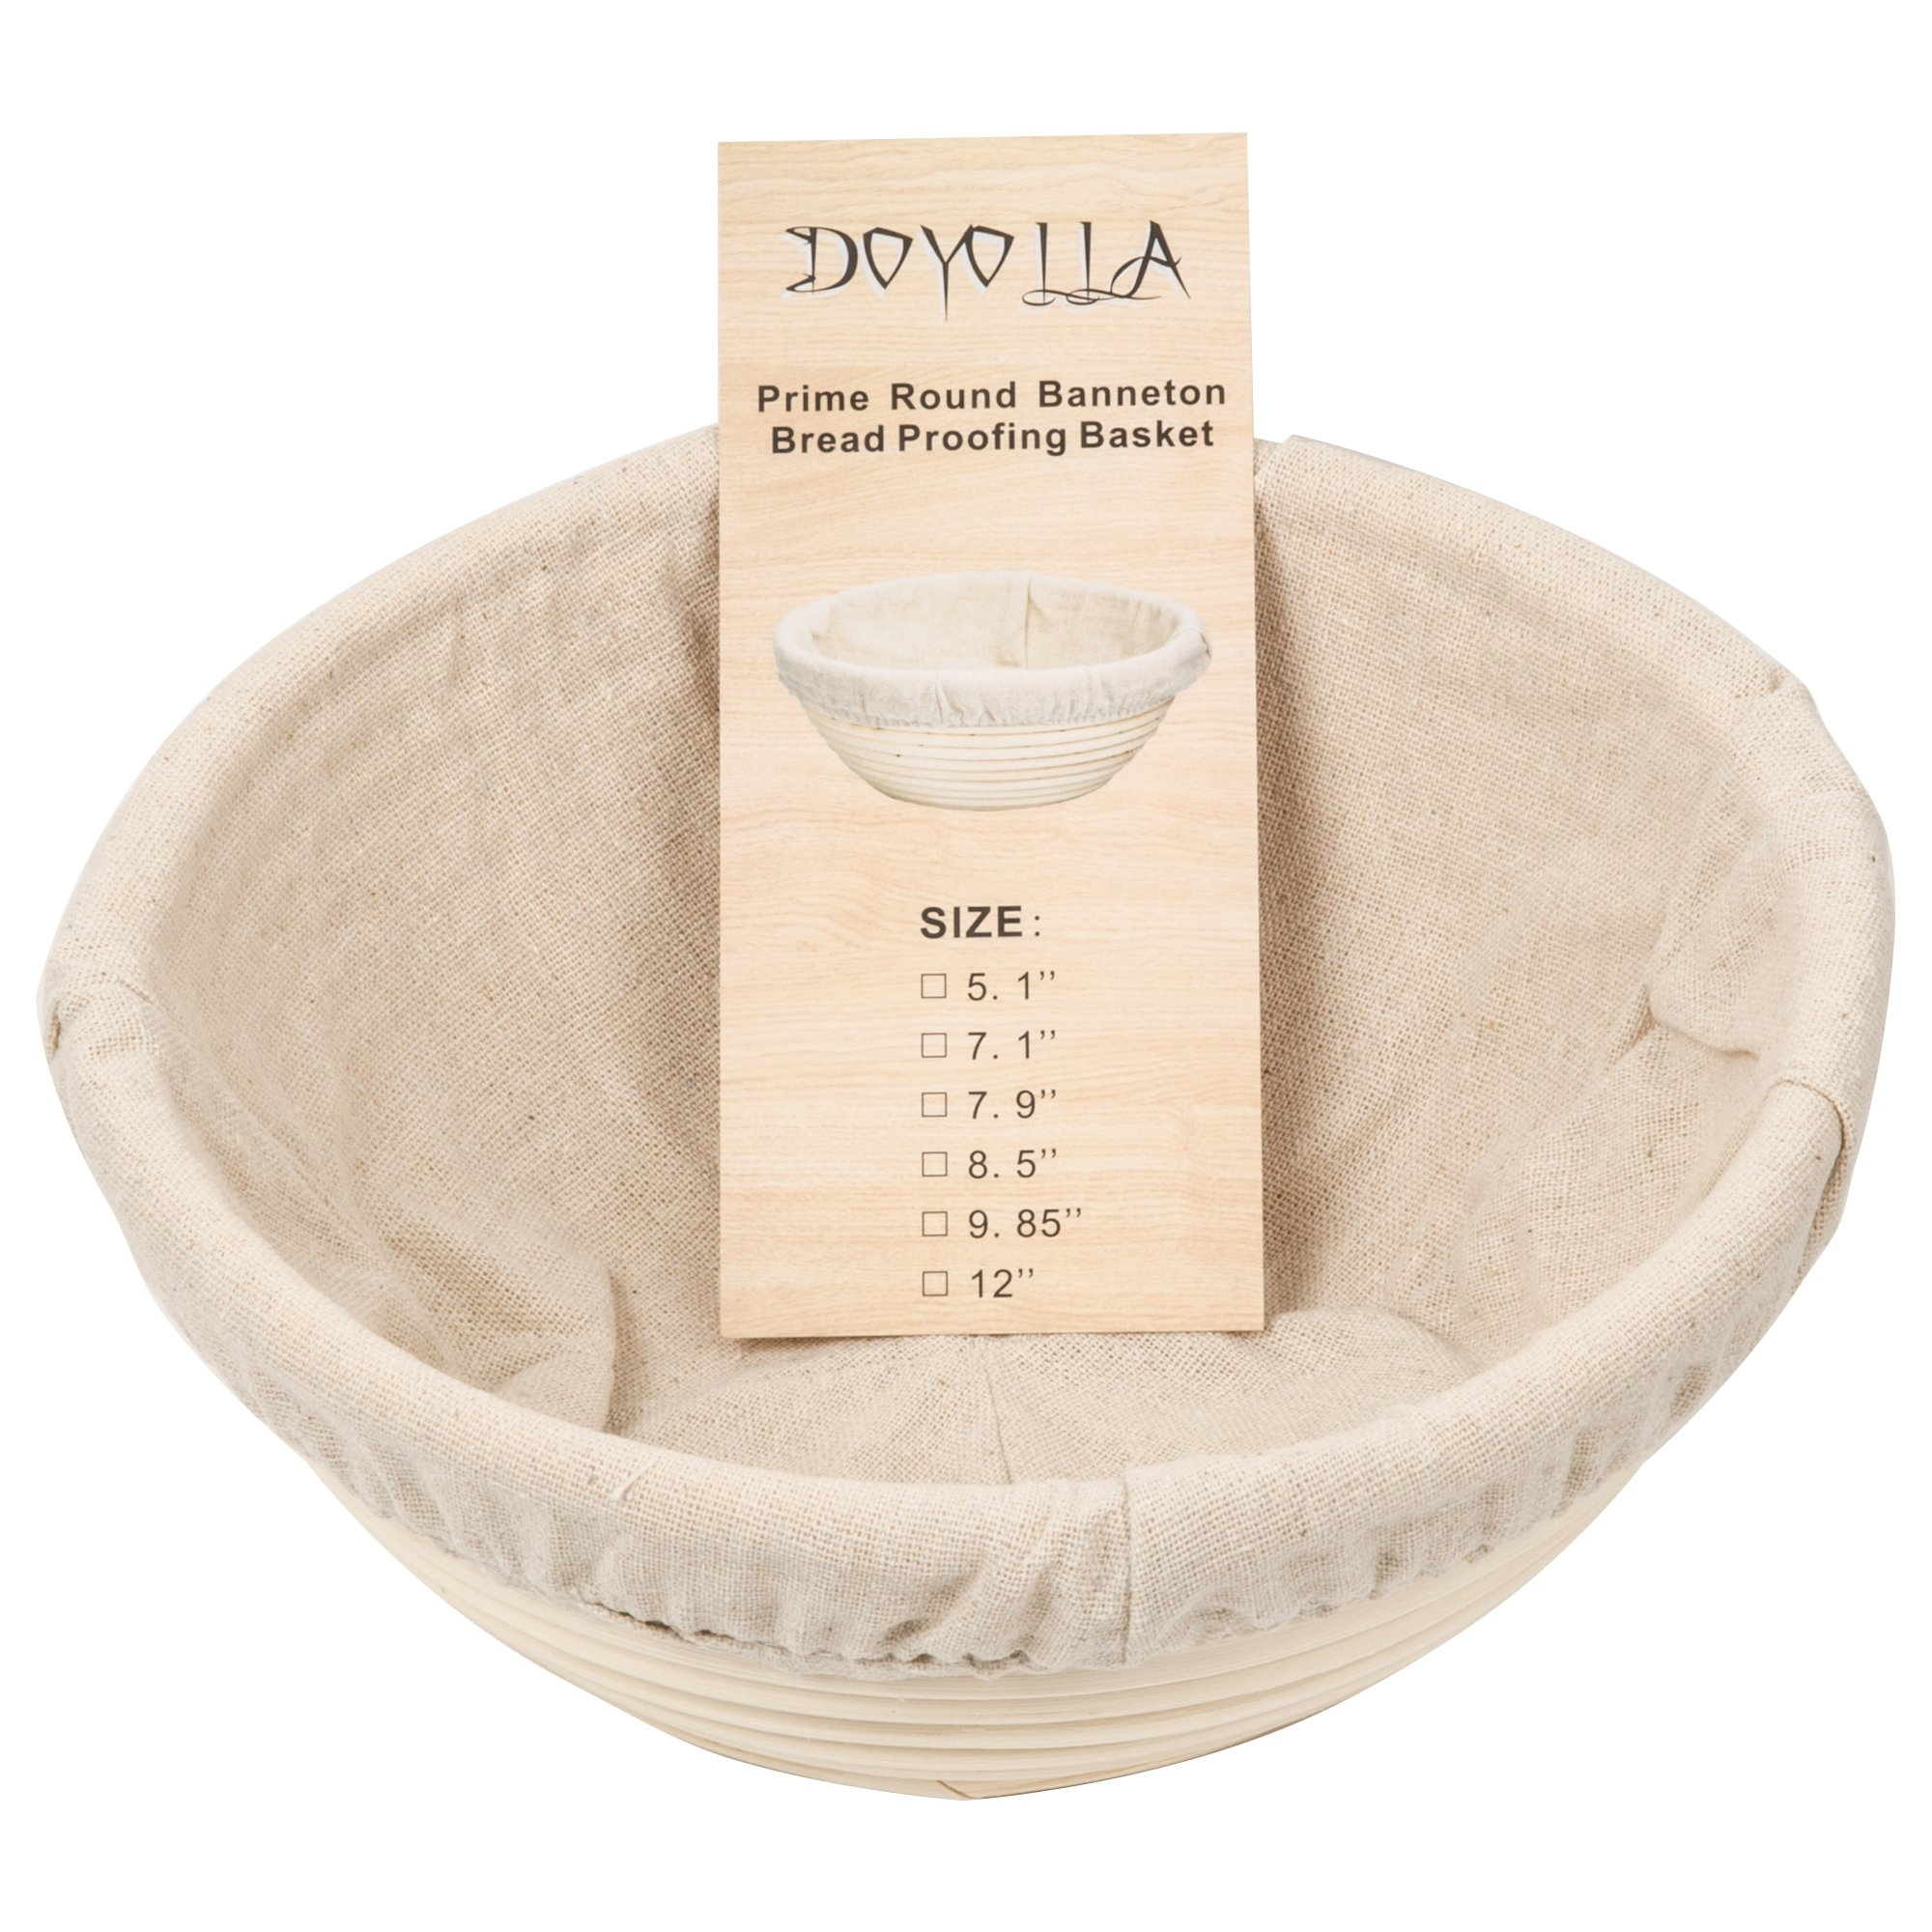 DOYOLLA 1pcs 8.5'' Round Banneton Brotform Bread Dough Proofing Rising Rattan Basket & Liner